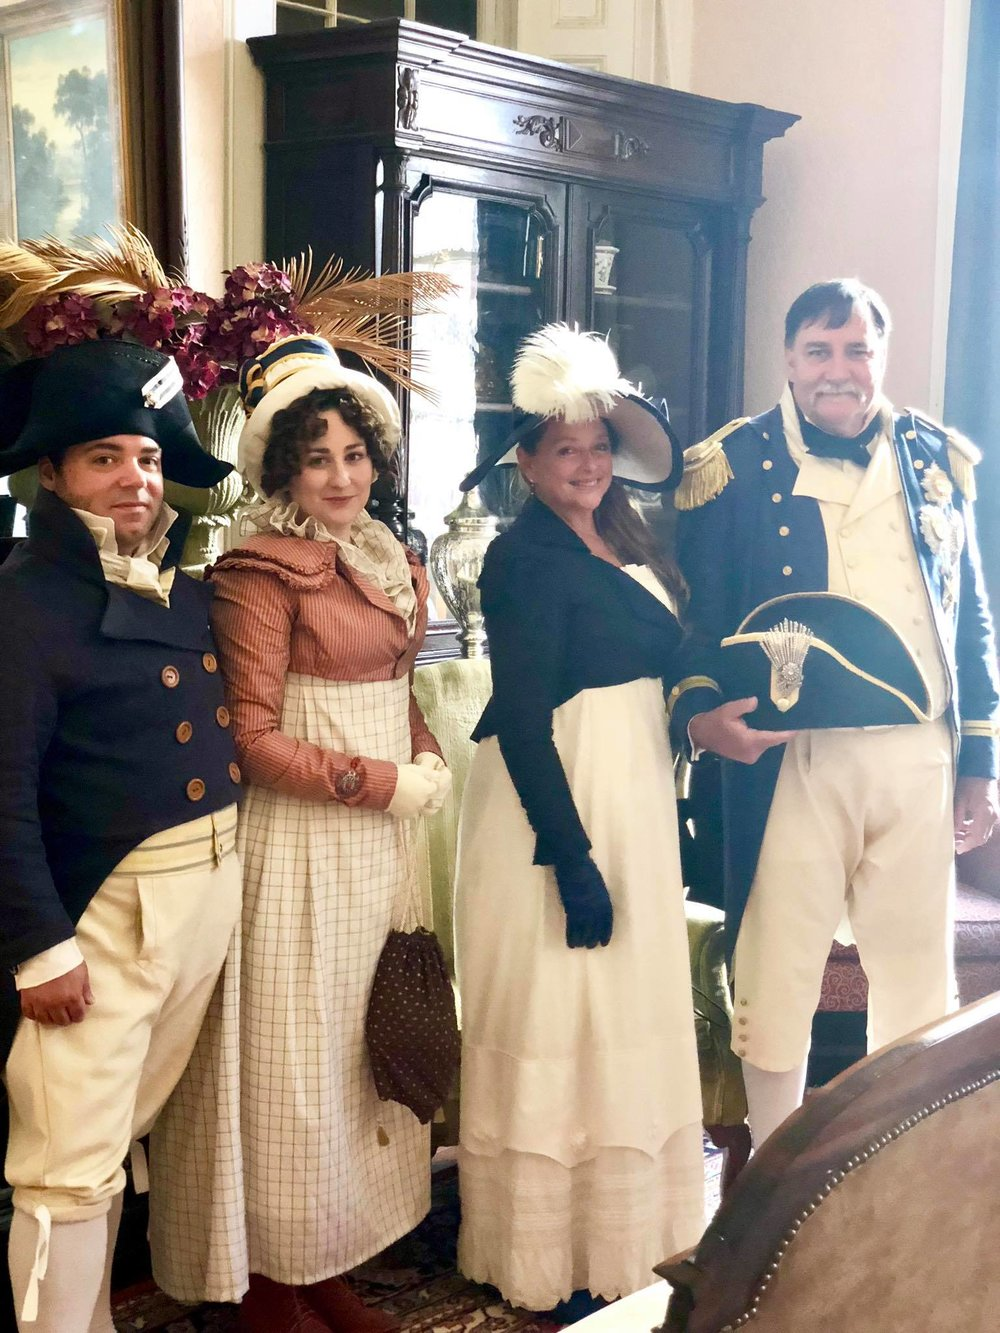 We are SO GLAD they joined us. - We had so much in common it was great conversation and we are looking forward to doing things together in the future…I will make a separate post about my Naval inspired outfit later.